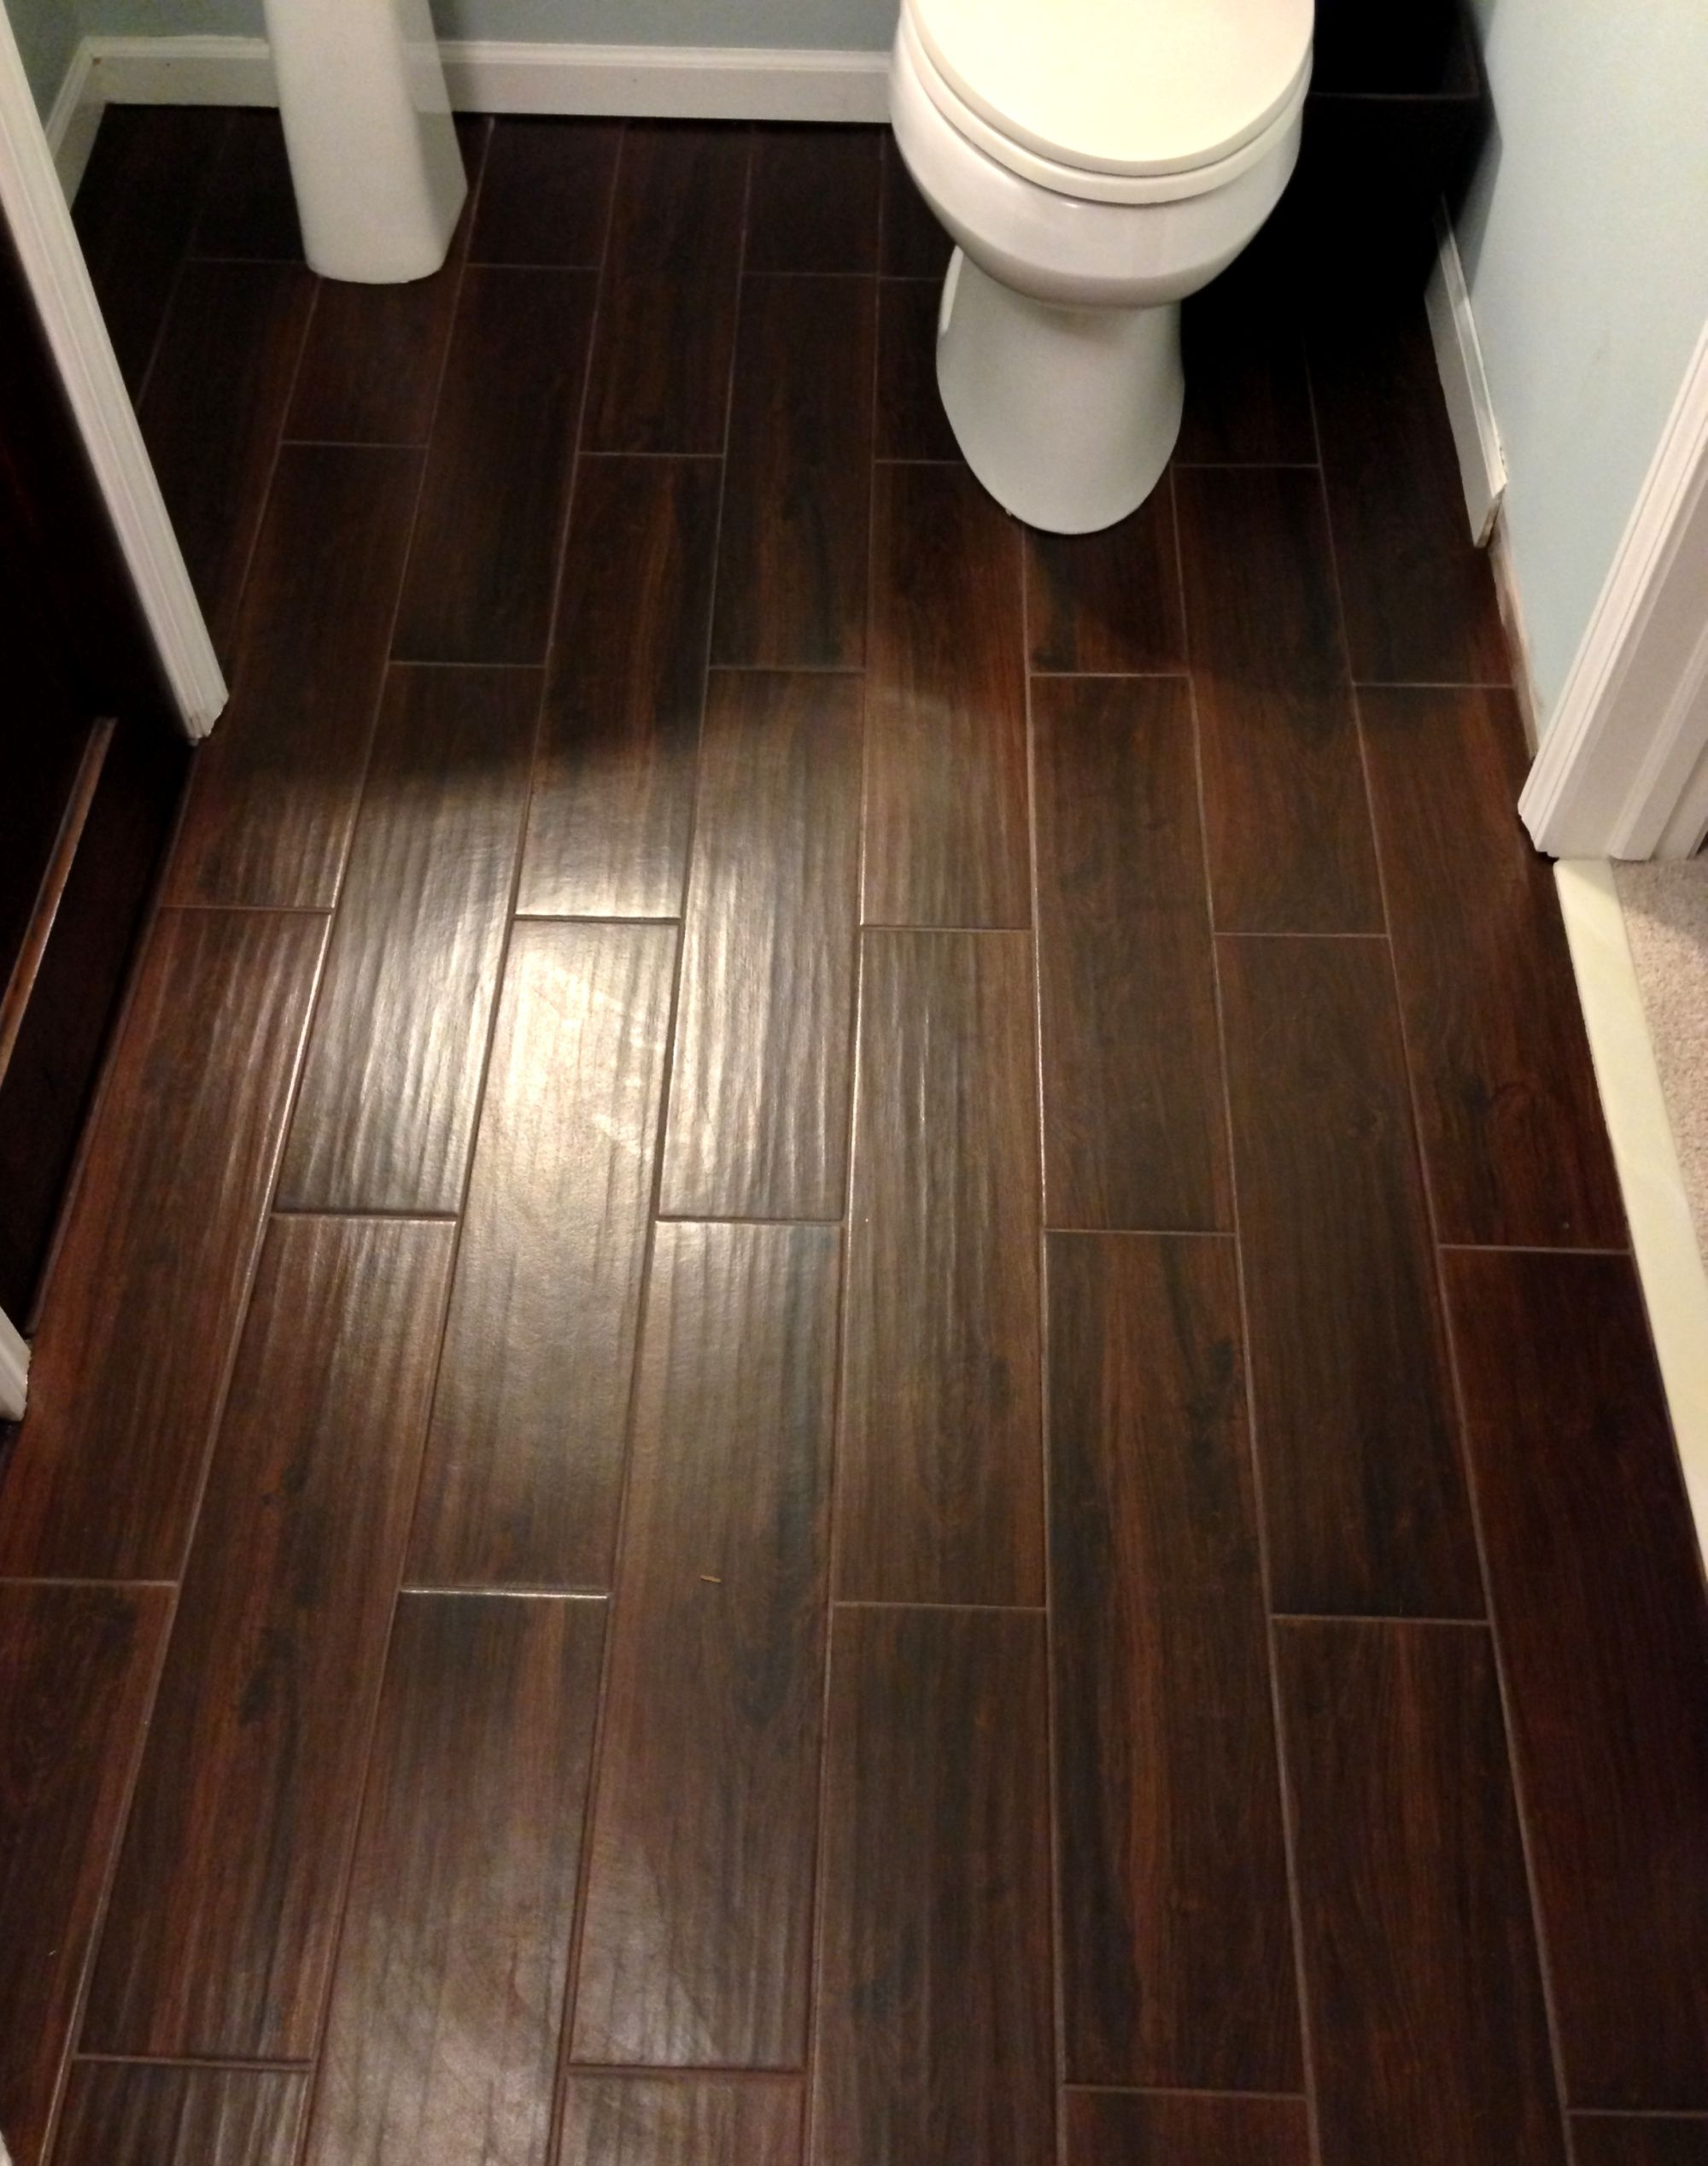 Ceramic Tile Floors That Look Like Hand Scraped Wood ...